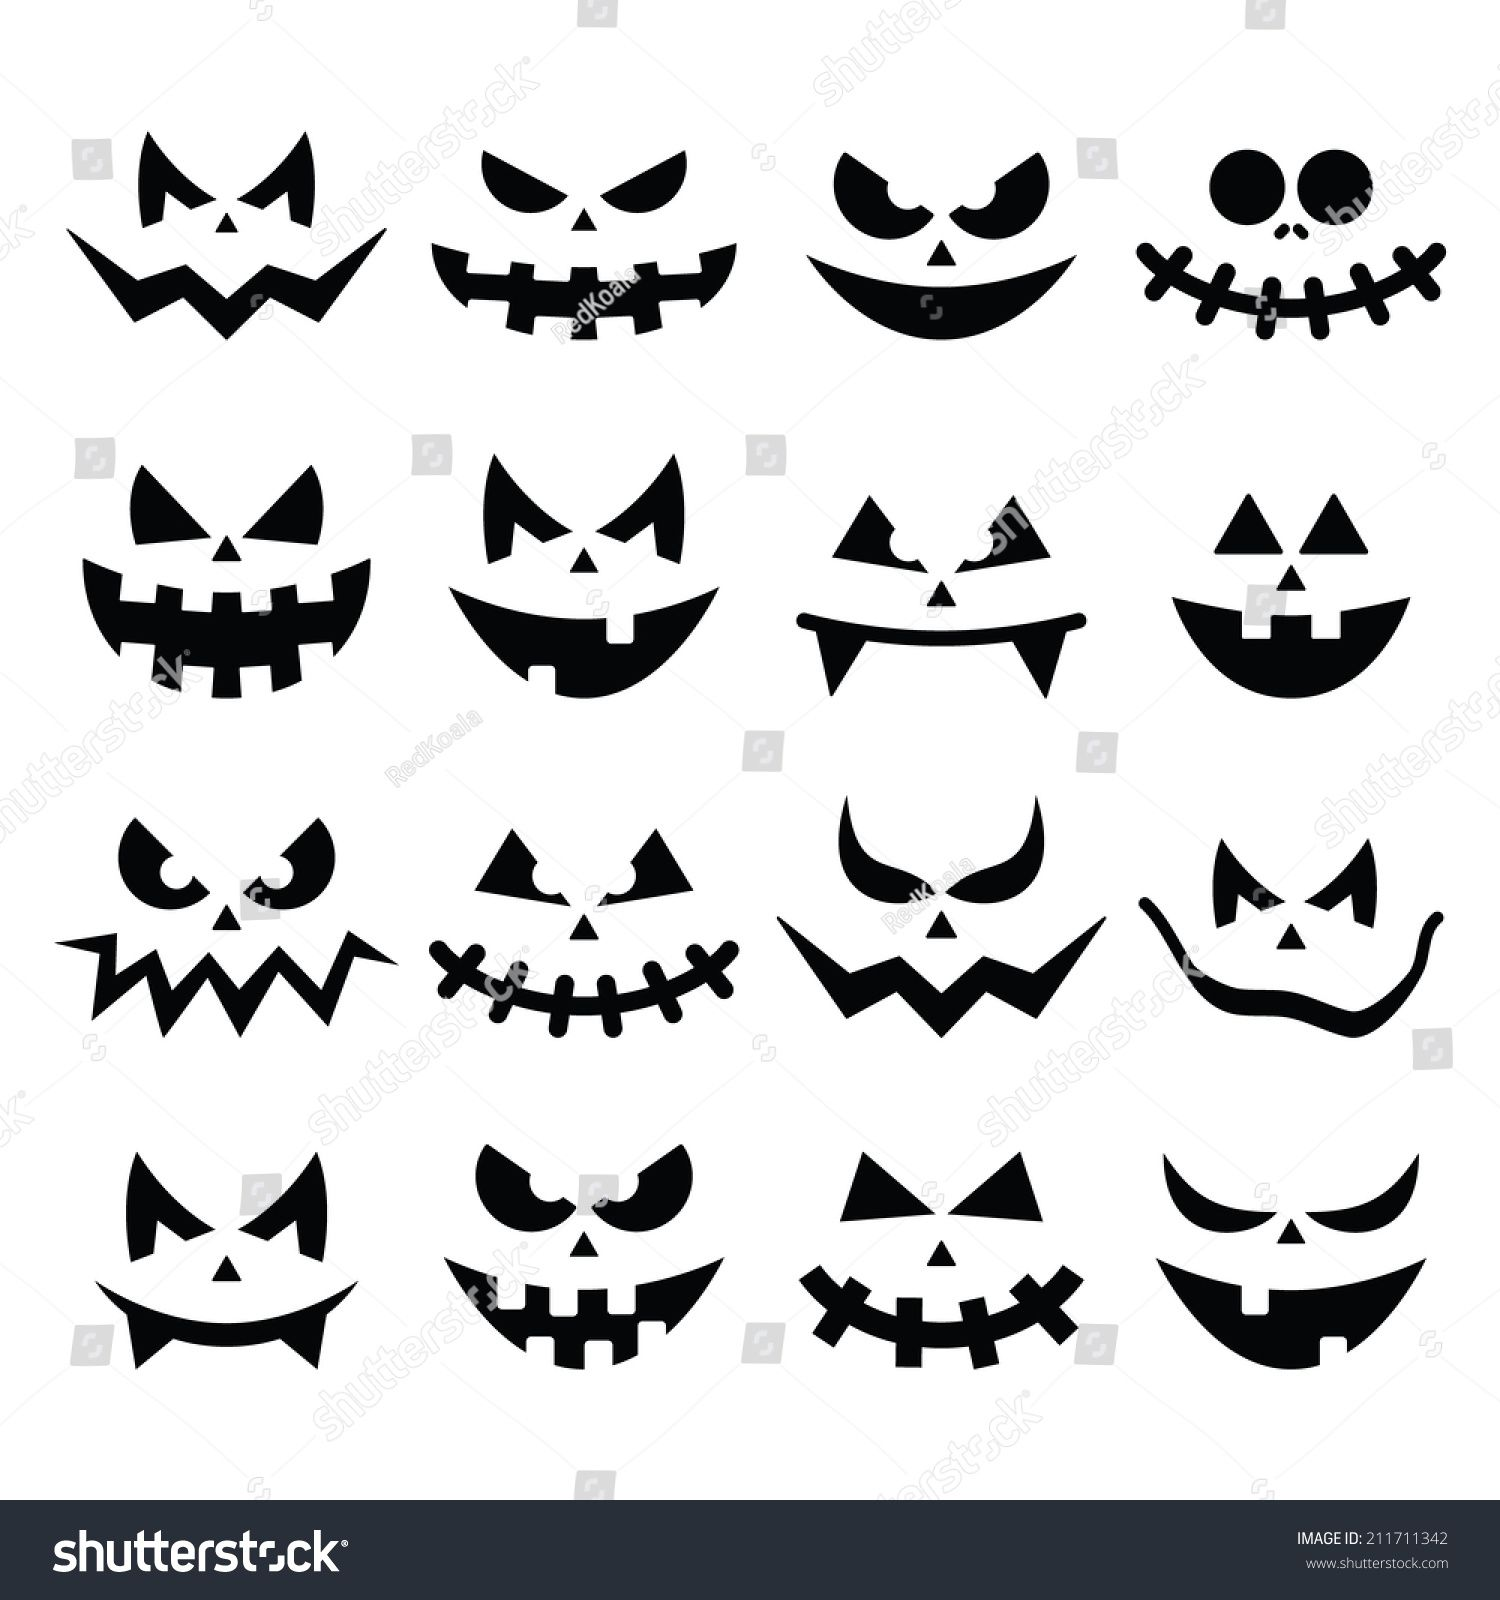 Scary Halloween pumpkin faces icons set #halloweendekobasteln